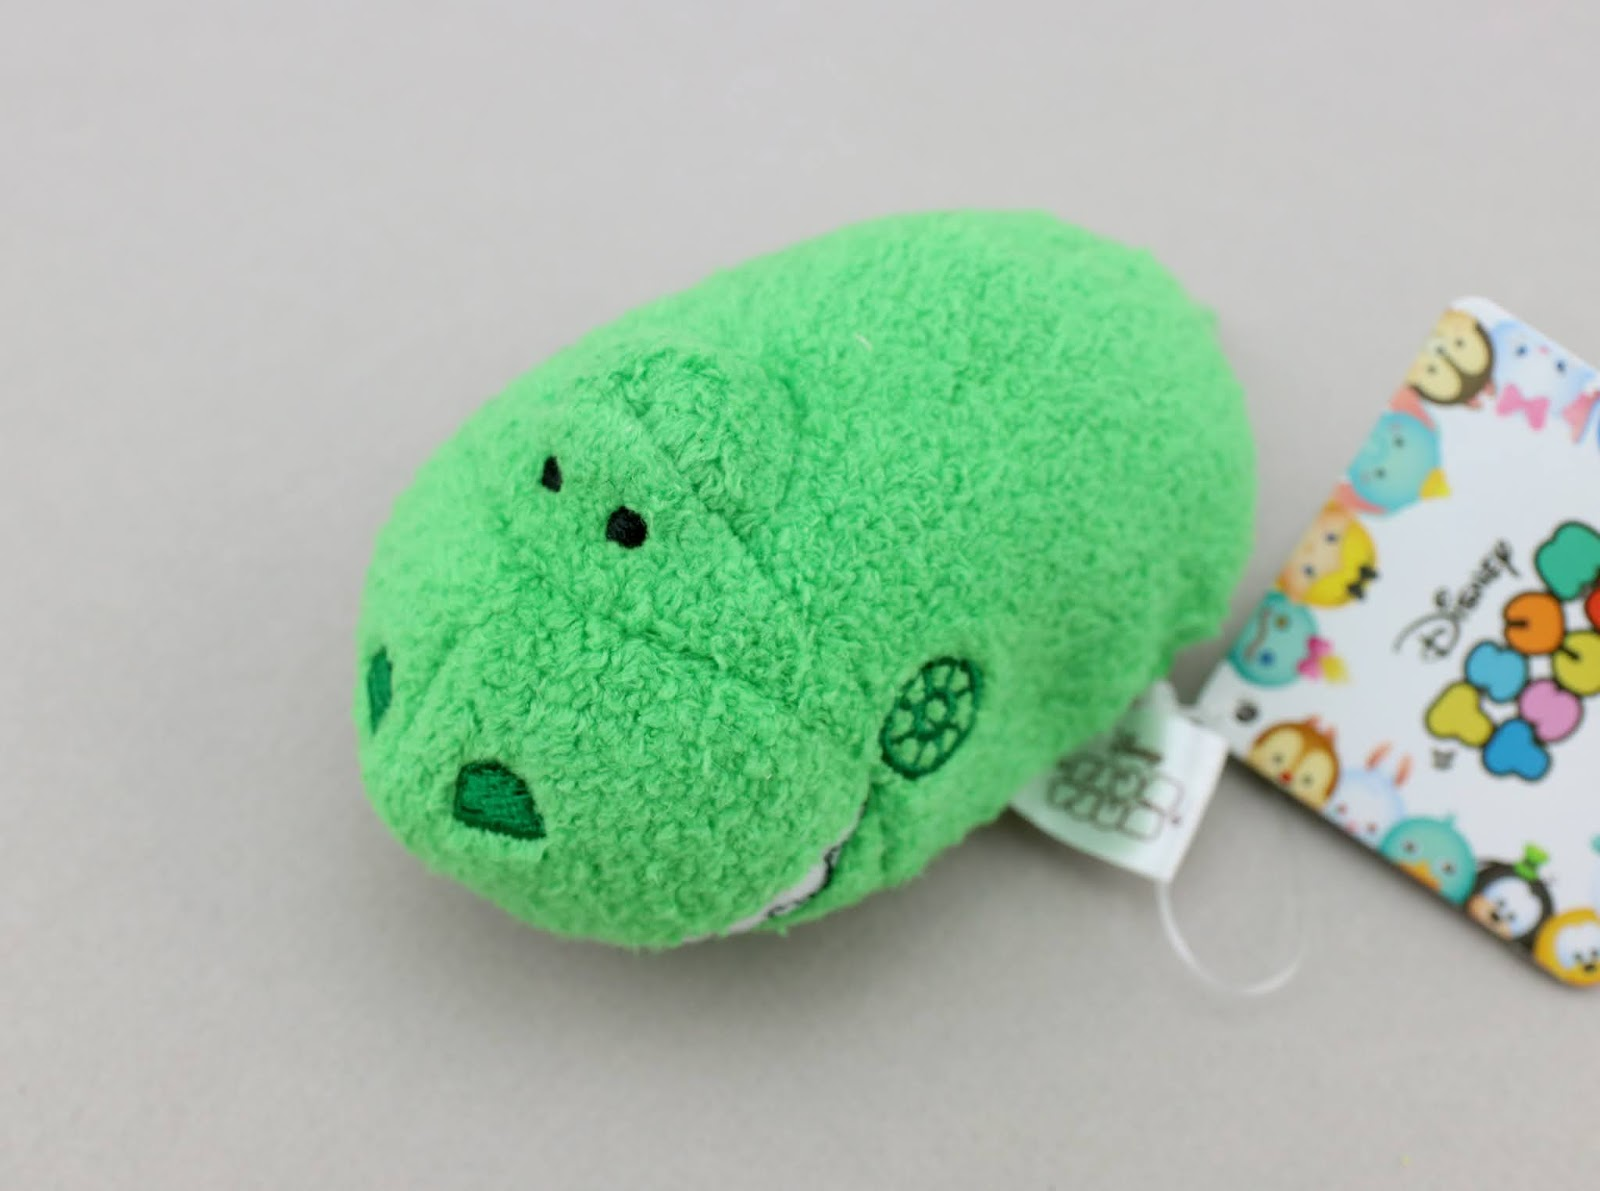 toy story 4 tsum tsums rex